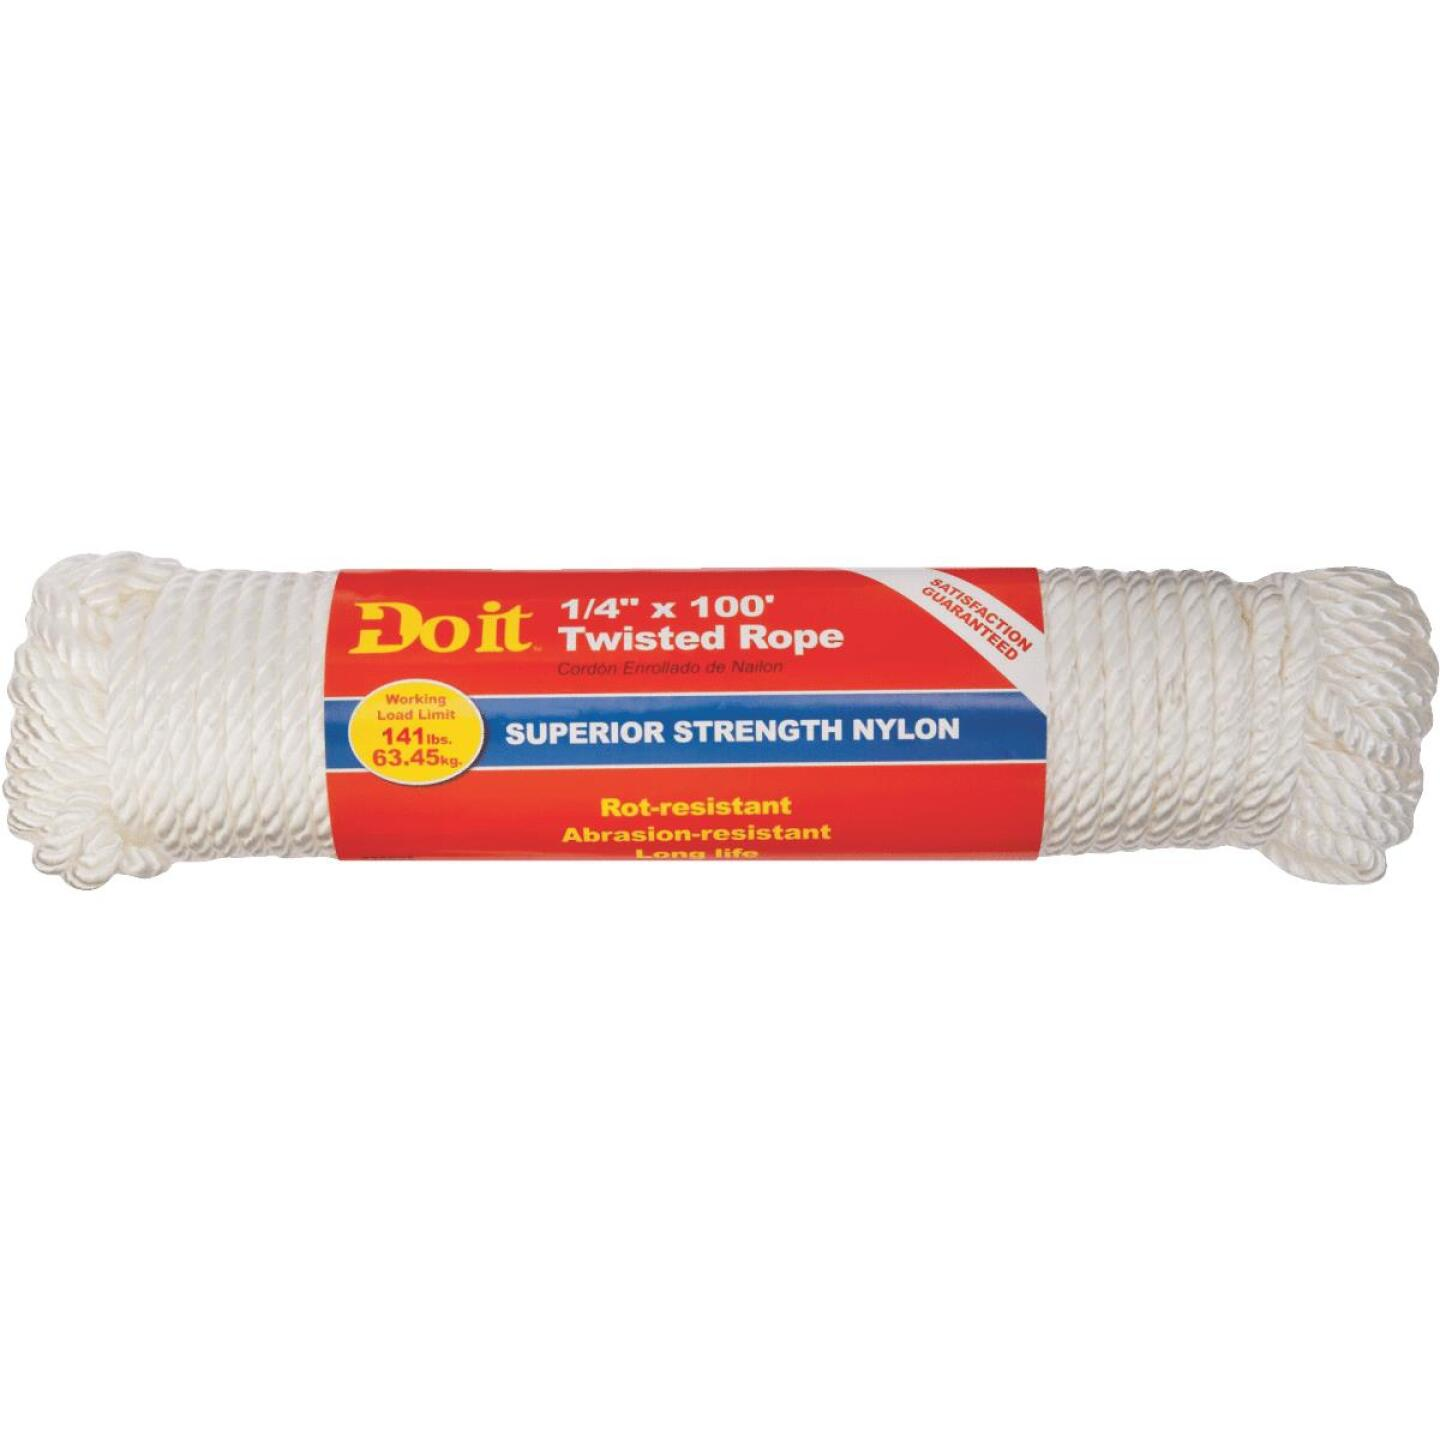 Do it 1/4 In. x 100 Ft. White Twisted Nylon Packaged Rope Image 2